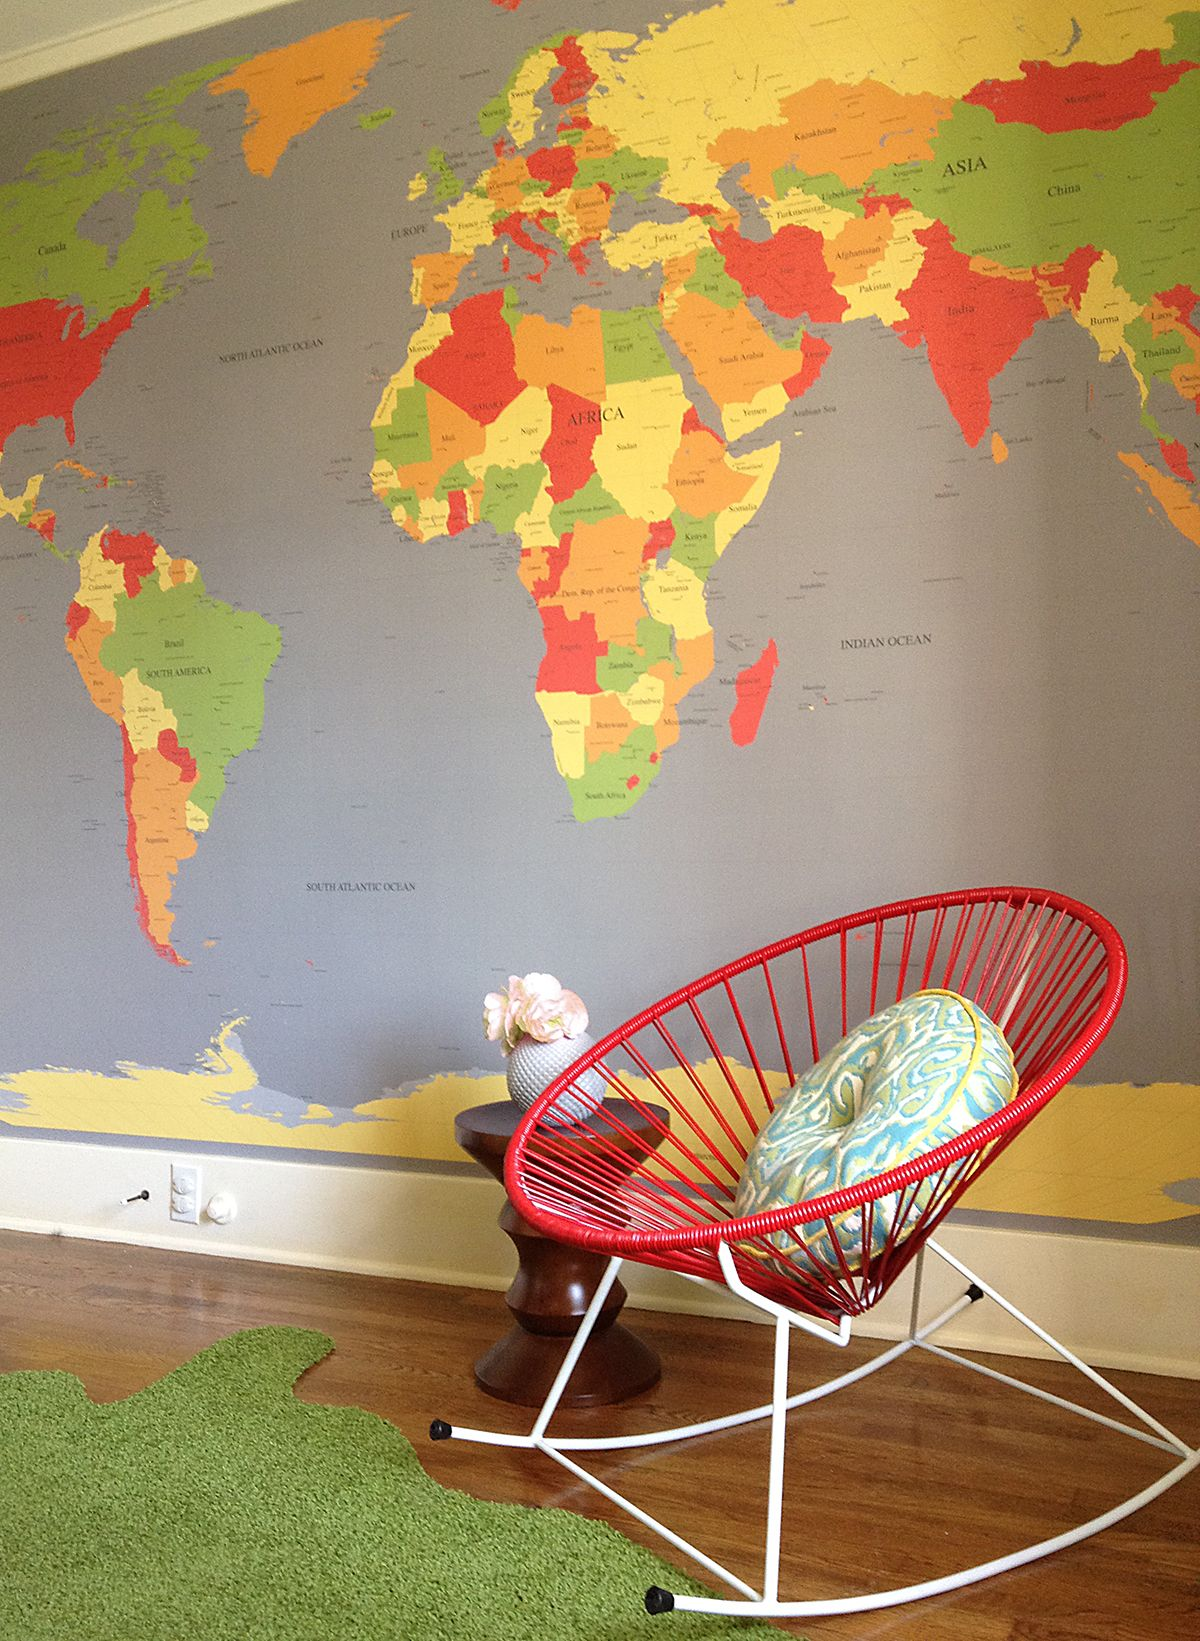 I Like That This Wall Map Is Labeled Decor Pinterest Walls - Wall map children's room